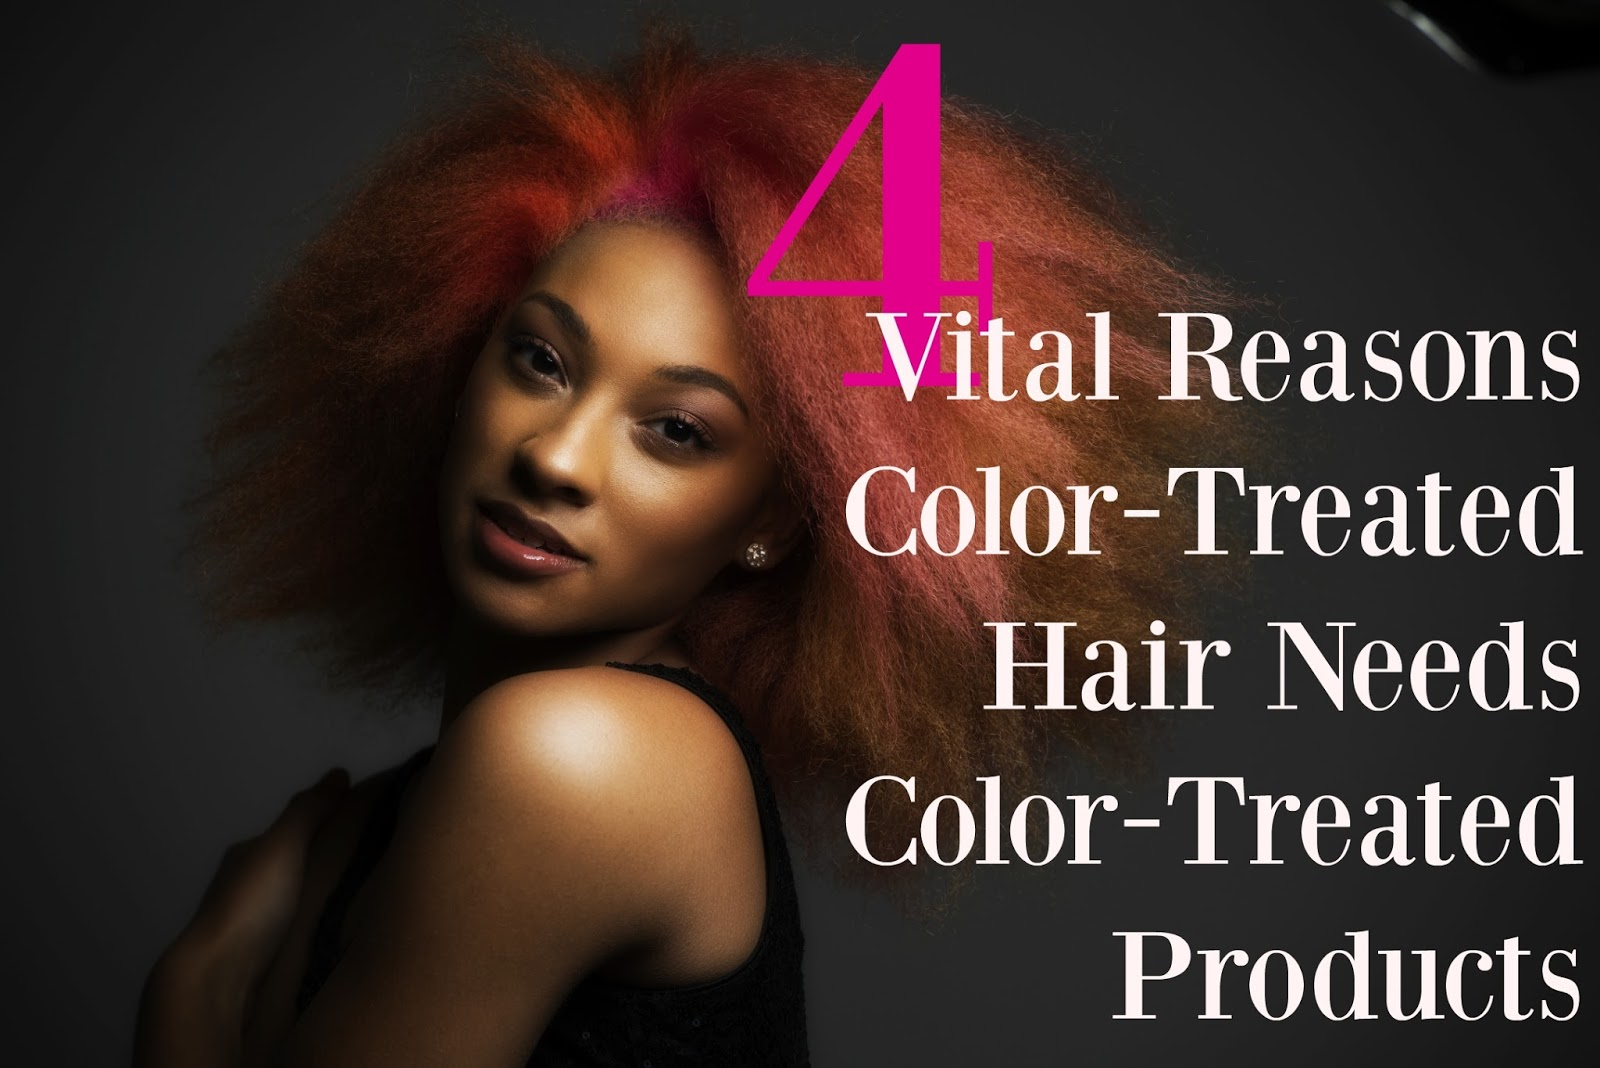 Teens and color-treated hair